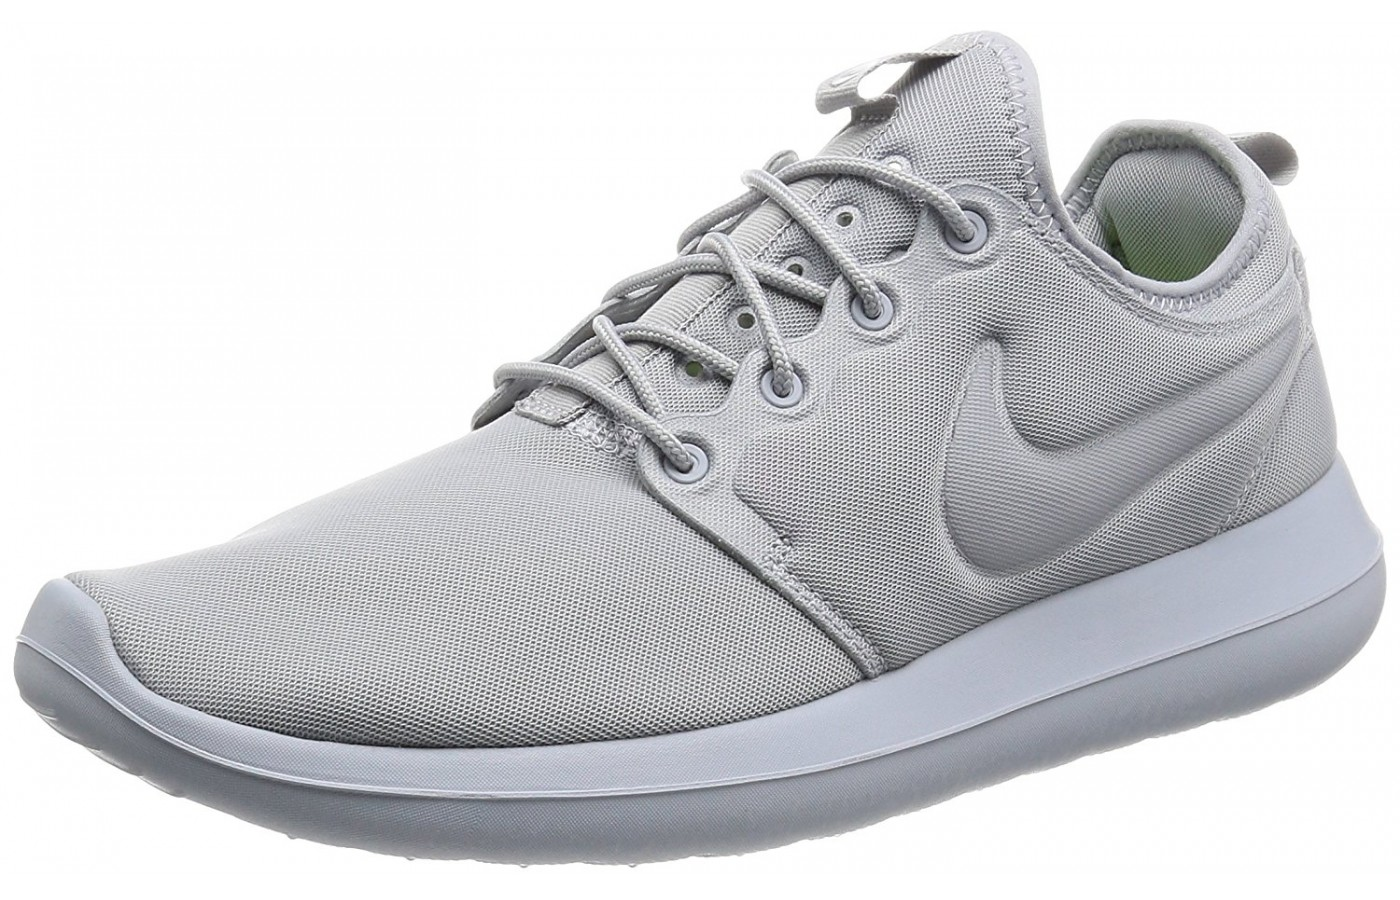 on sale 337aa ab45a Nike Roshe 2 Reviewed & Tested for Performance in 2019 ...